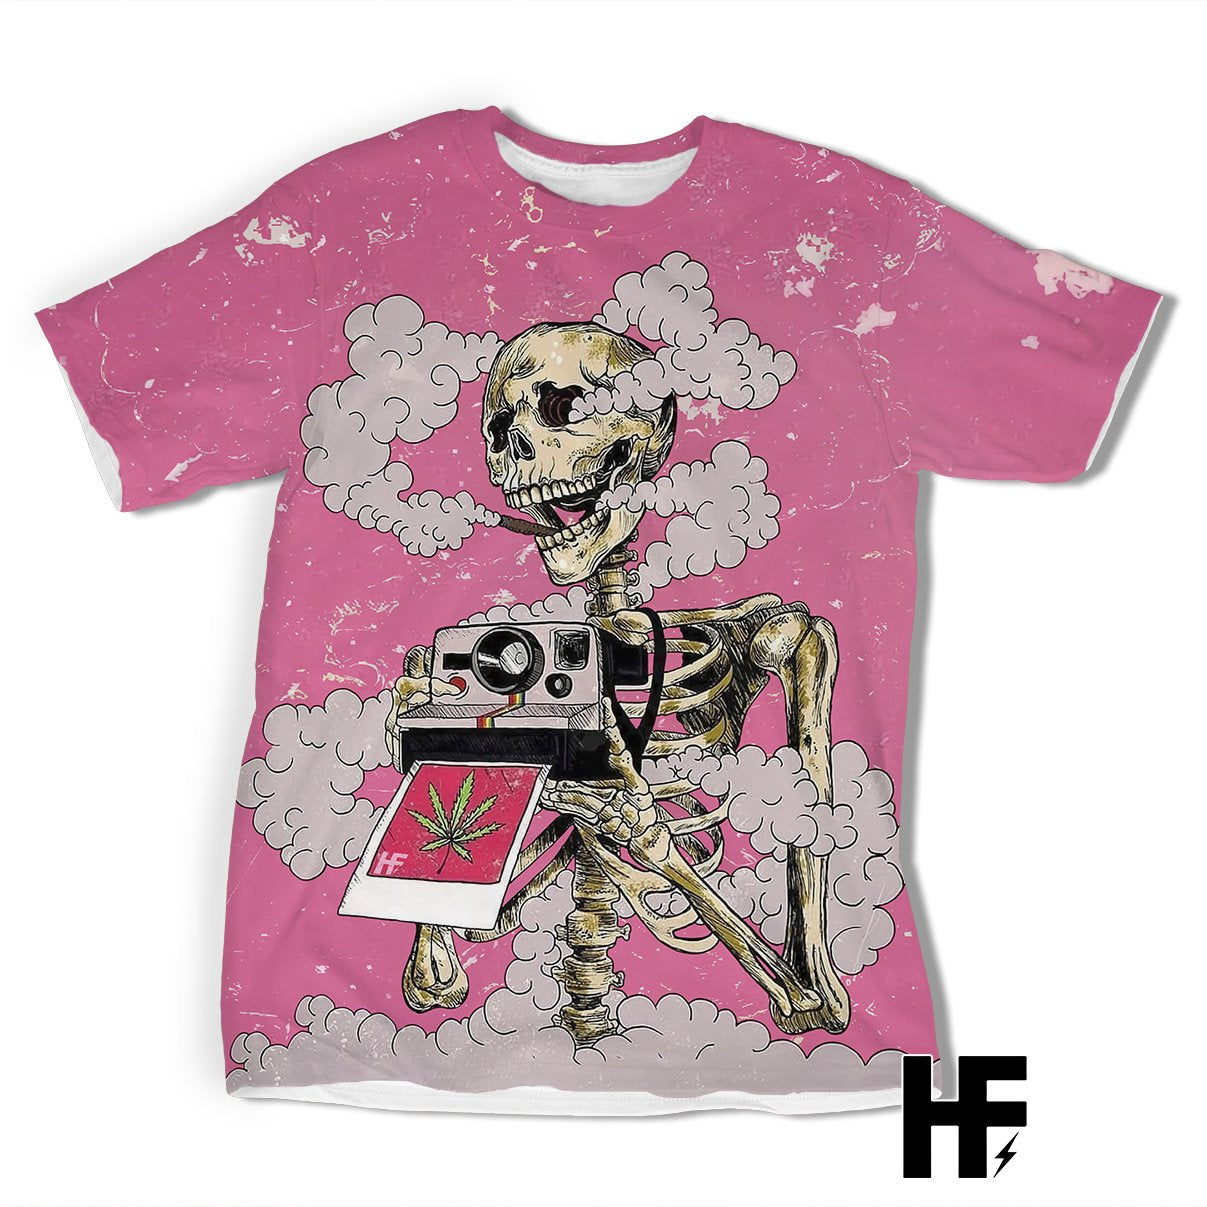 Smoking Skeleton Pink EZ08 2403 All Over T-shirt